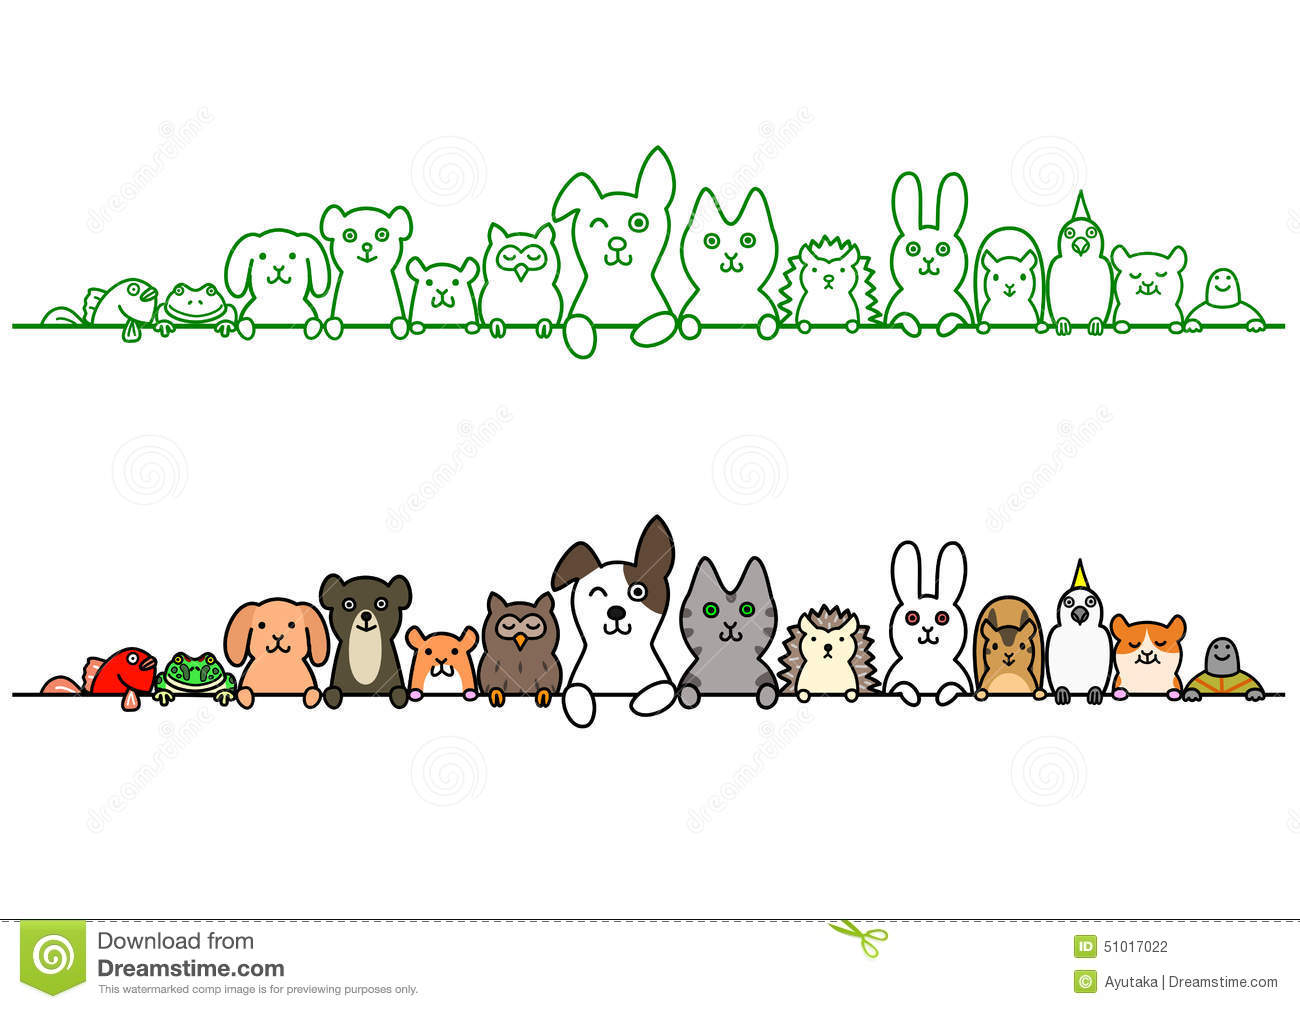 When Scanning Line Art You Should : Pet animals in a row with copy space stock vector